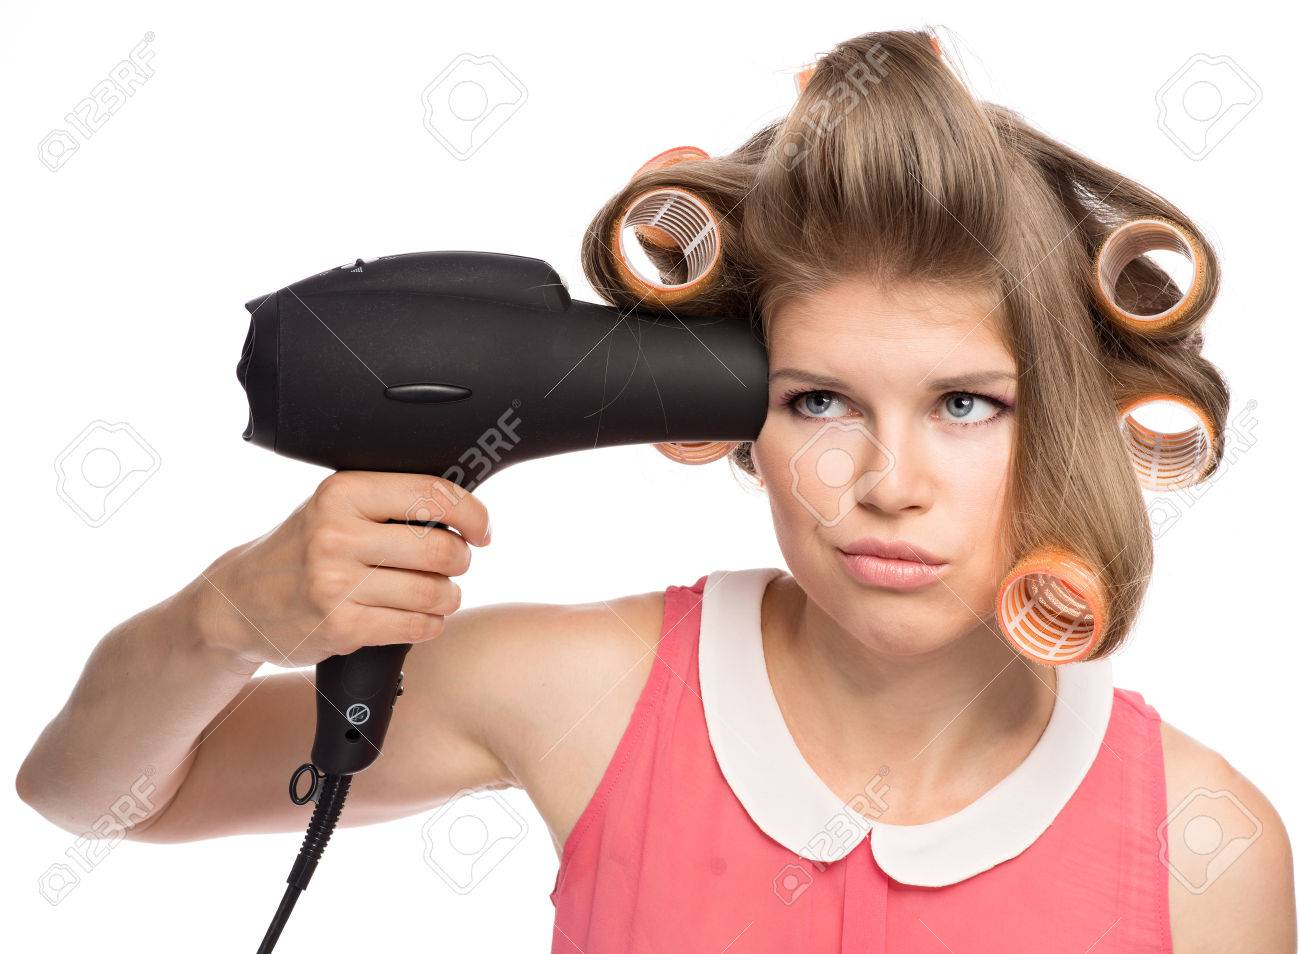 Stressed woman in hair curlers preparing for a date  Pretty blond female model with hairdryer  Isolated over white background Stock Photo - 22677993